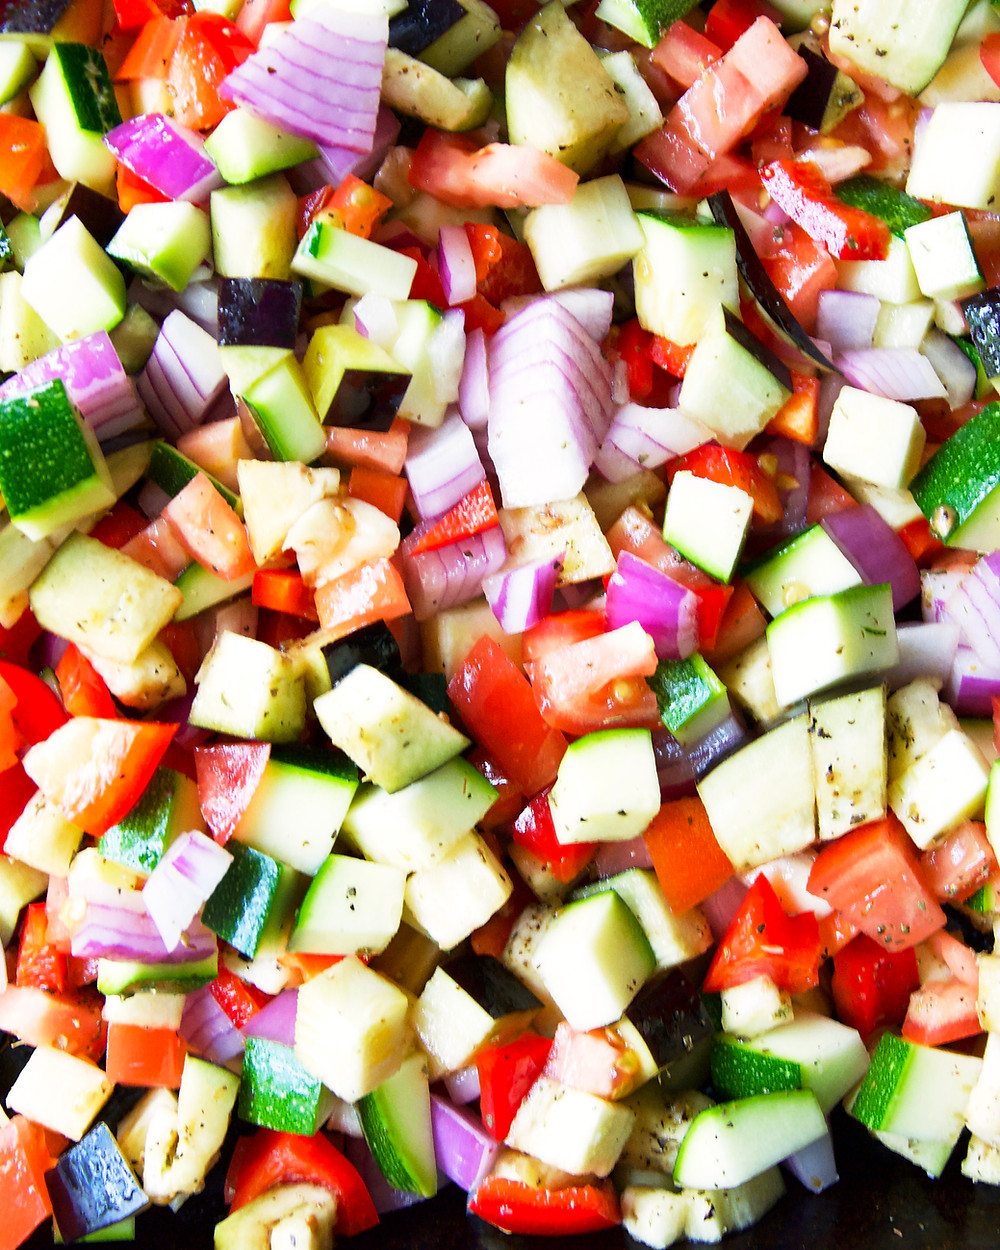 Chopped veggies are ready to go in the oven.